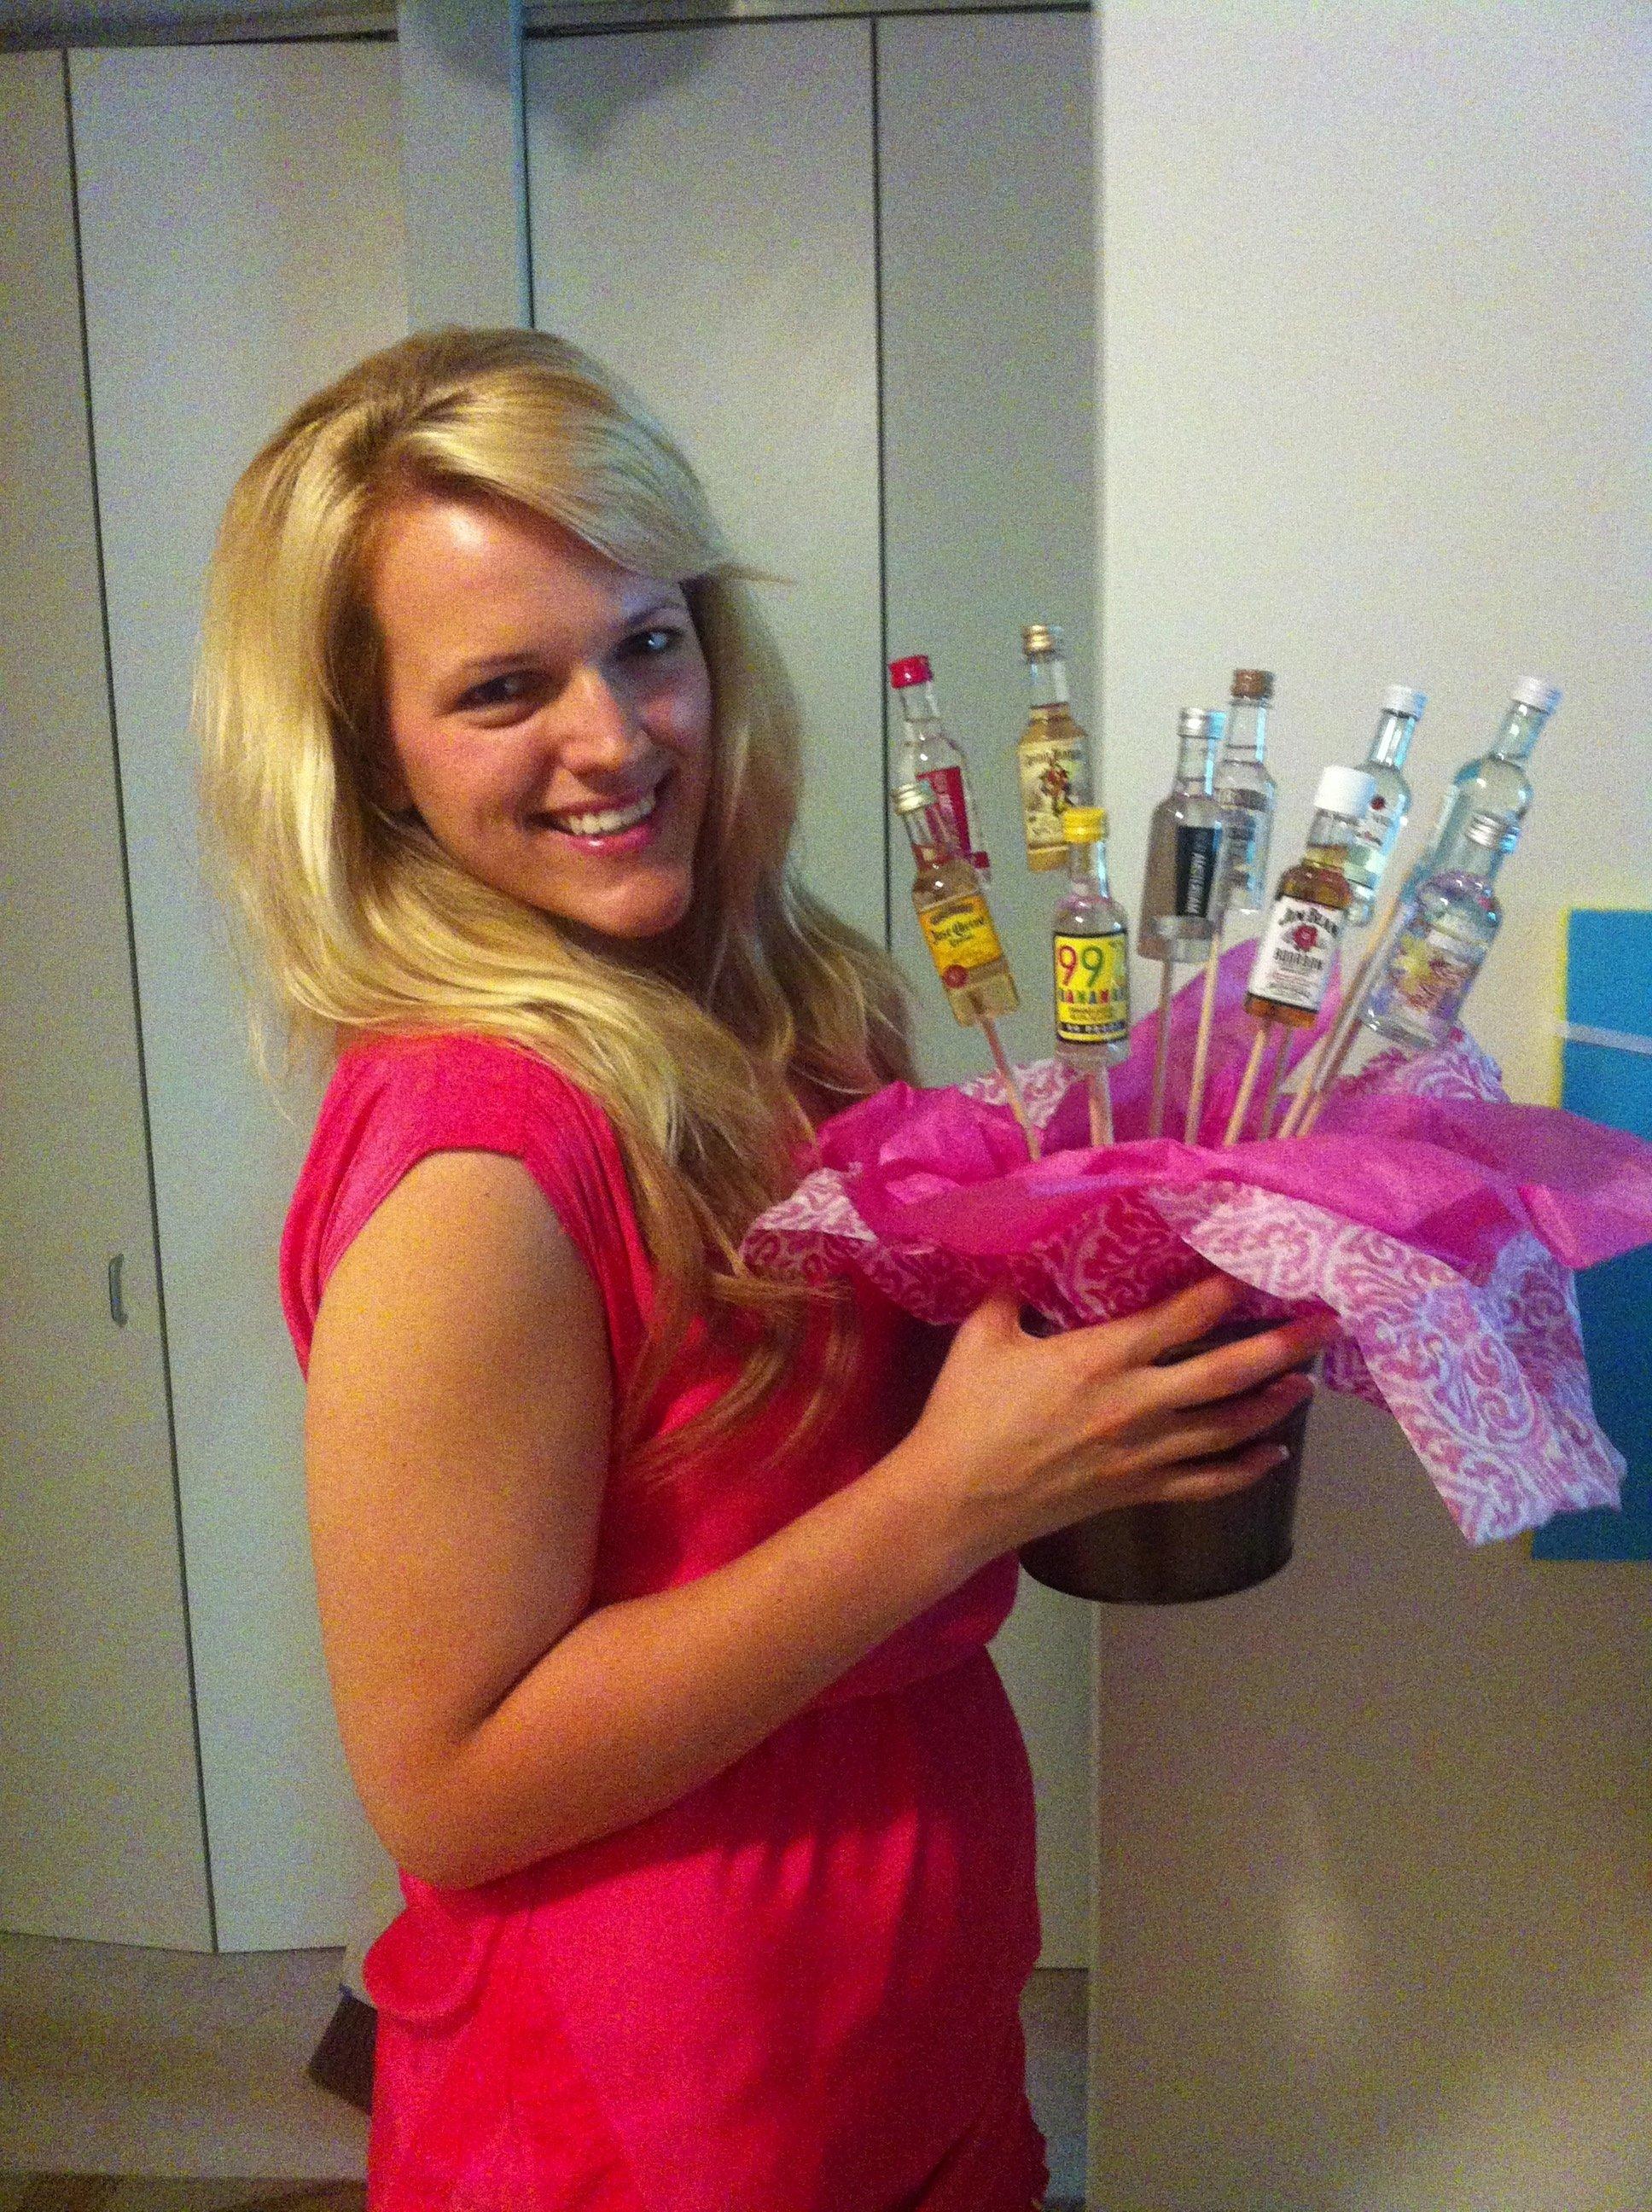 10 Attractive Gift Ideas For 21 Year Old Female Fun 21st Birthday Awkward Vodka